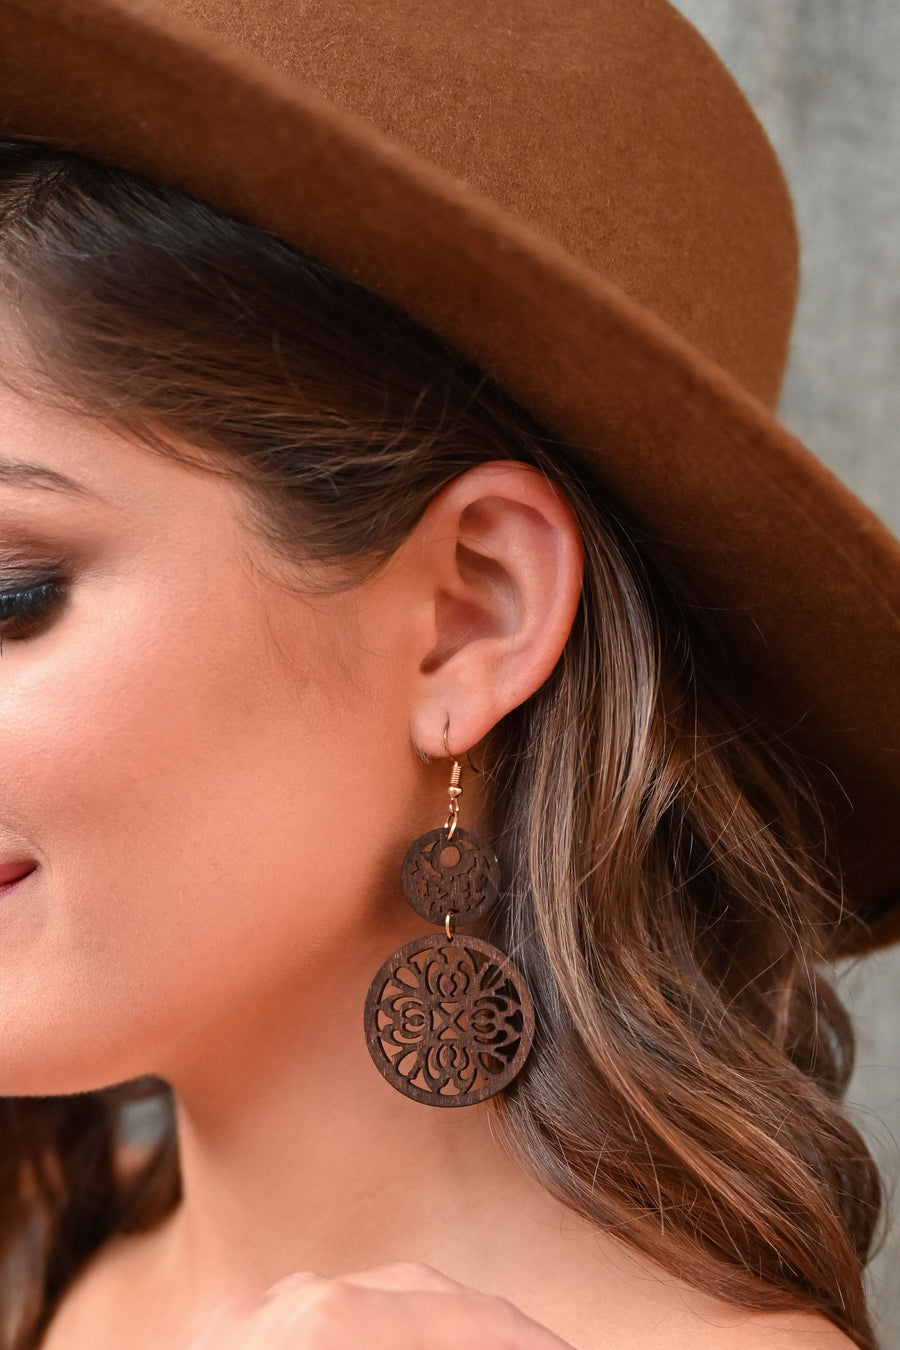 Romance Dangle Earrings - Brown womens trendy filigree lightweight earrings closet candy side; Model: Hannah Sluss